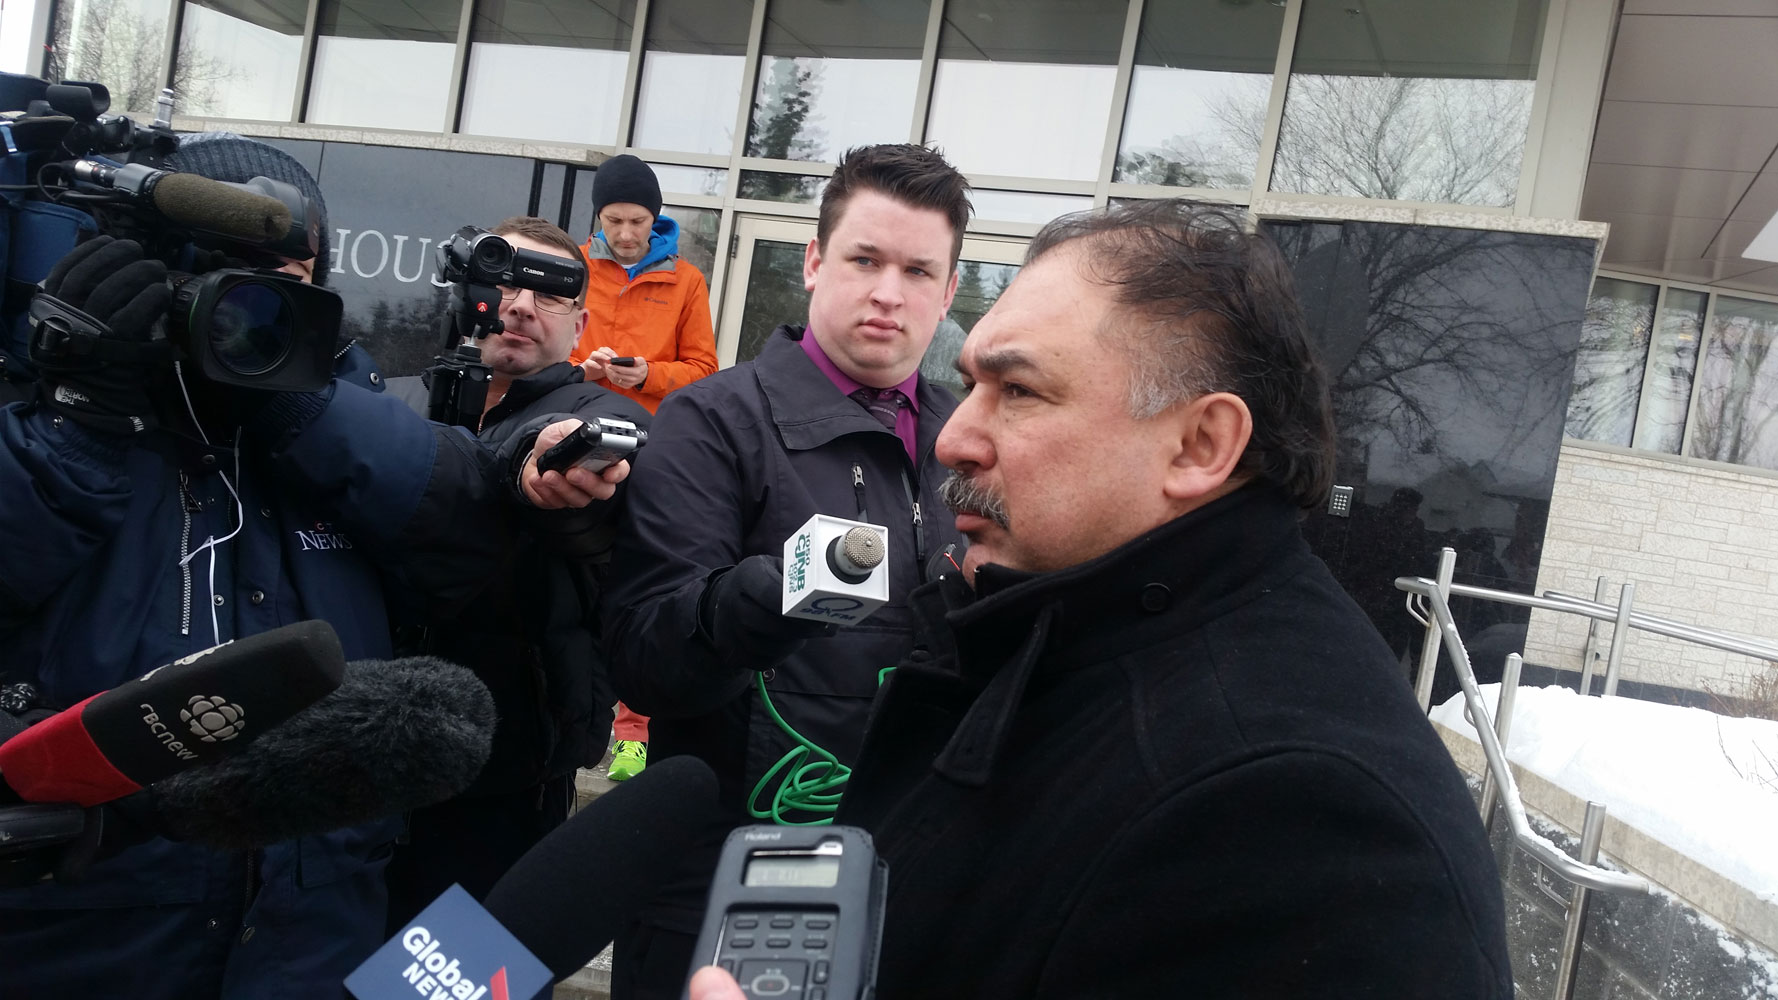 FSIN vice chief Bob Merasty speaks to media after the court appearance for the youth charged in the La Loche shooting.